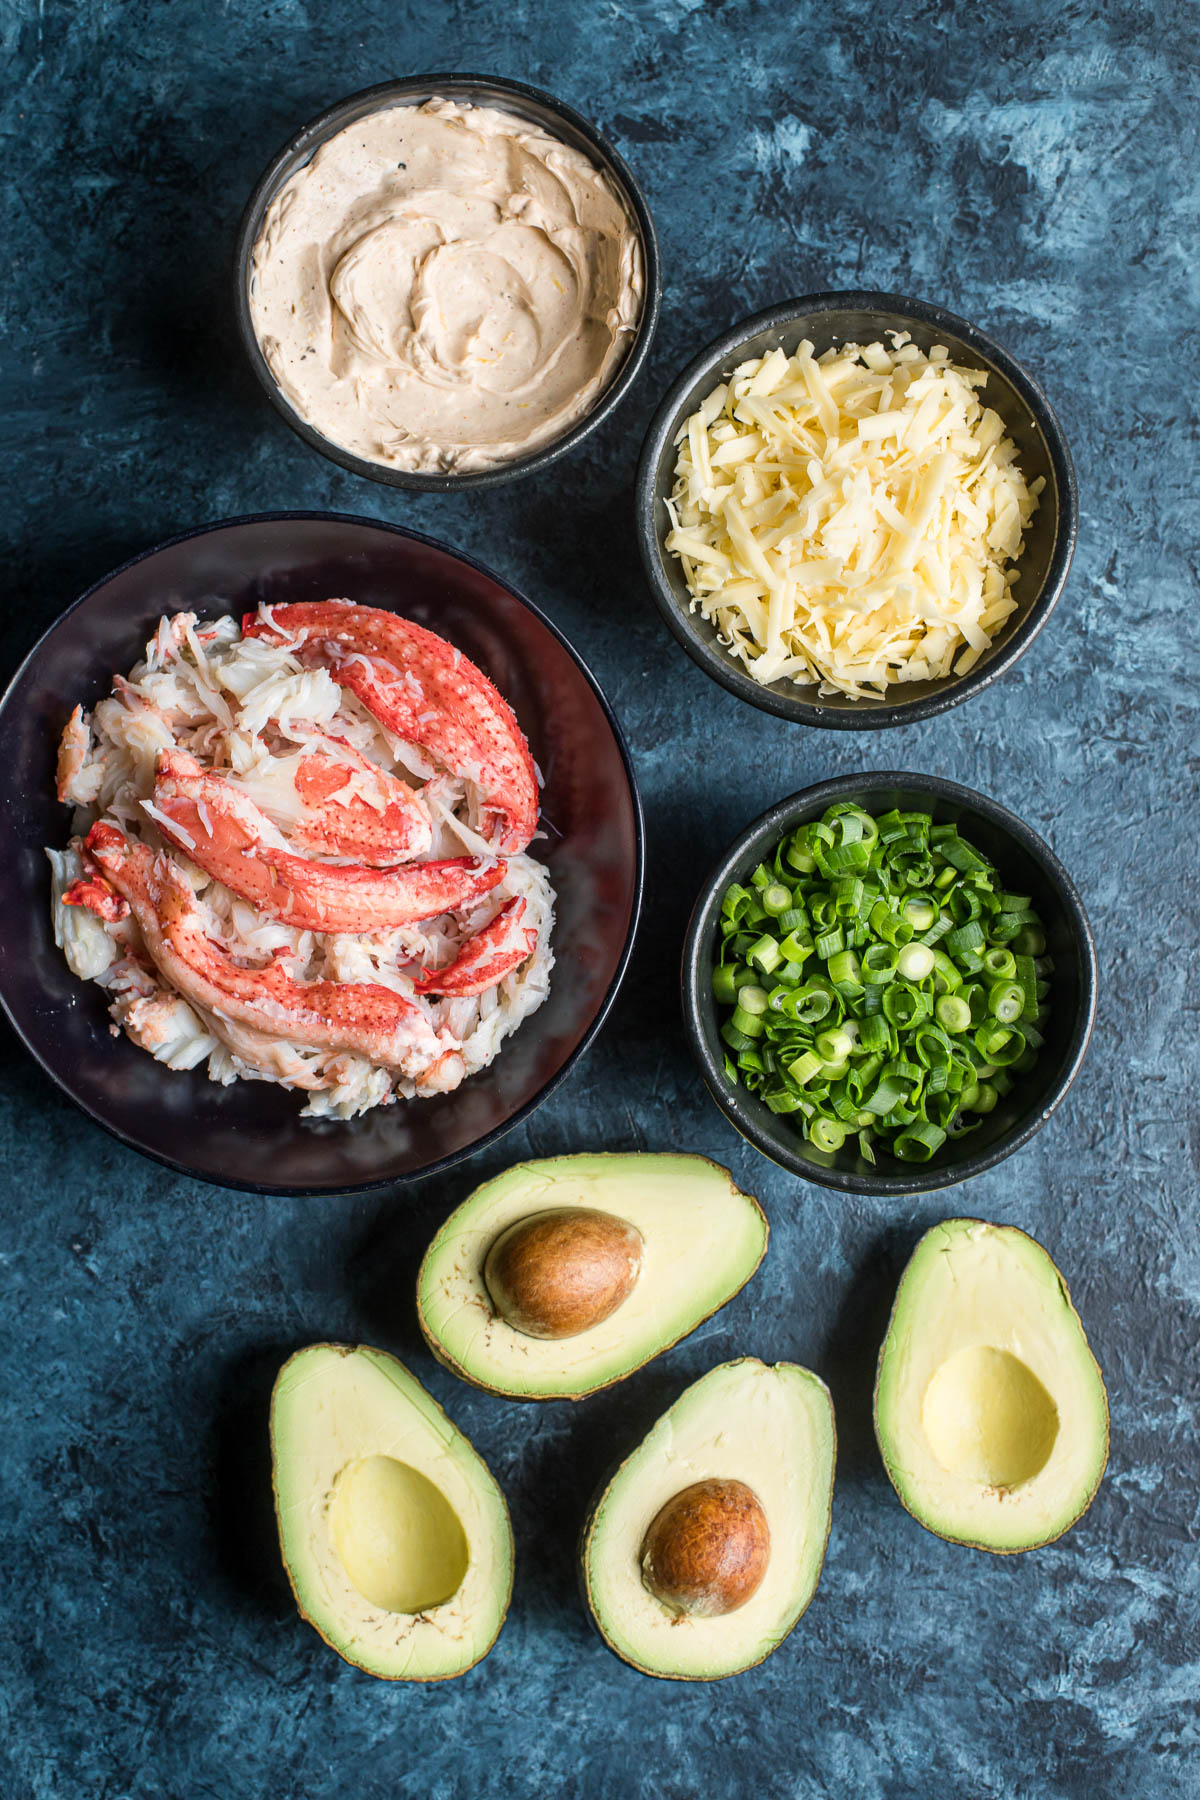 Stuffed Avocado with Alaska Crab (Low Carb, Keto Friendly)